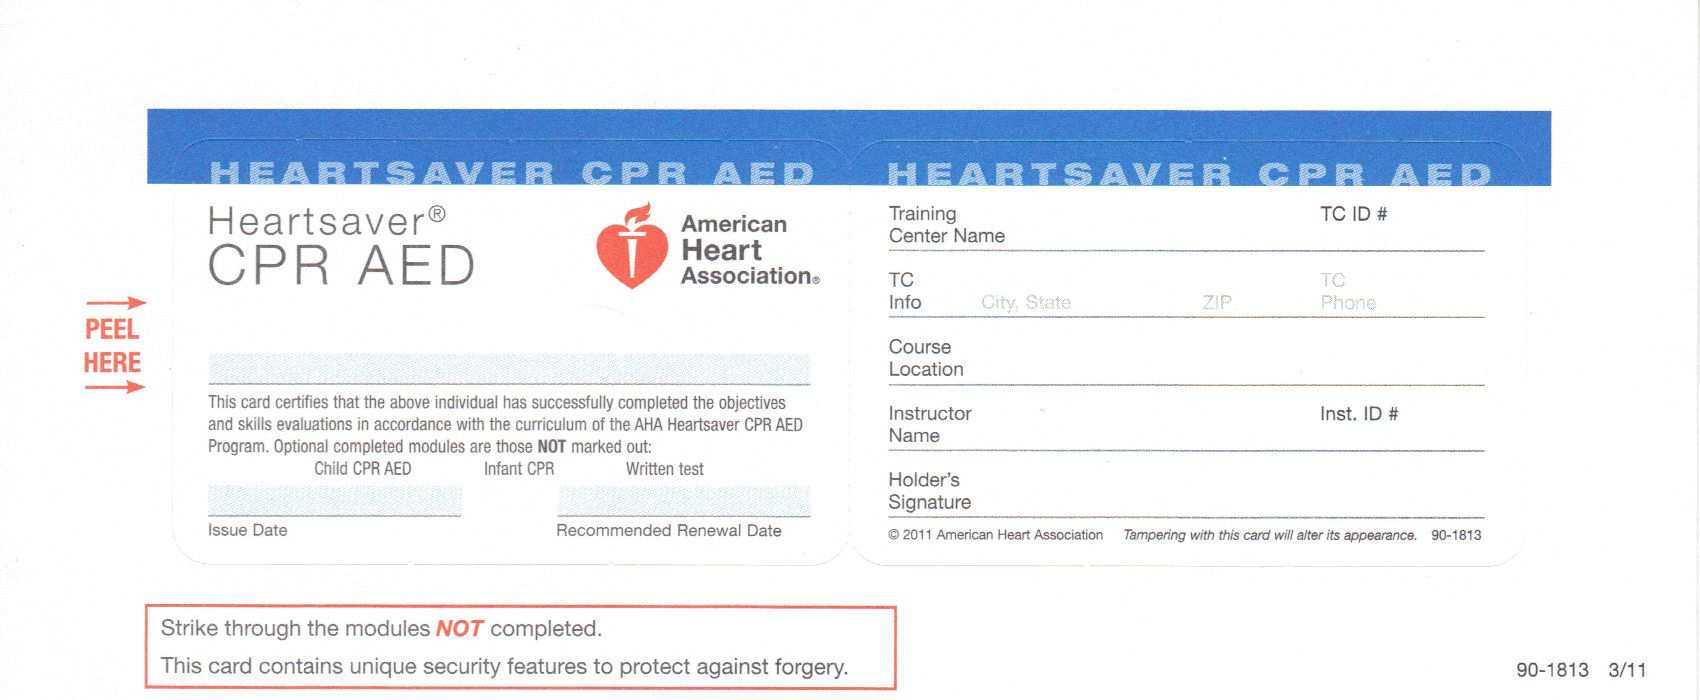 21 Creative Cpr Card Template Printable in Photoshop by Cpr Card For Cpr Card Template